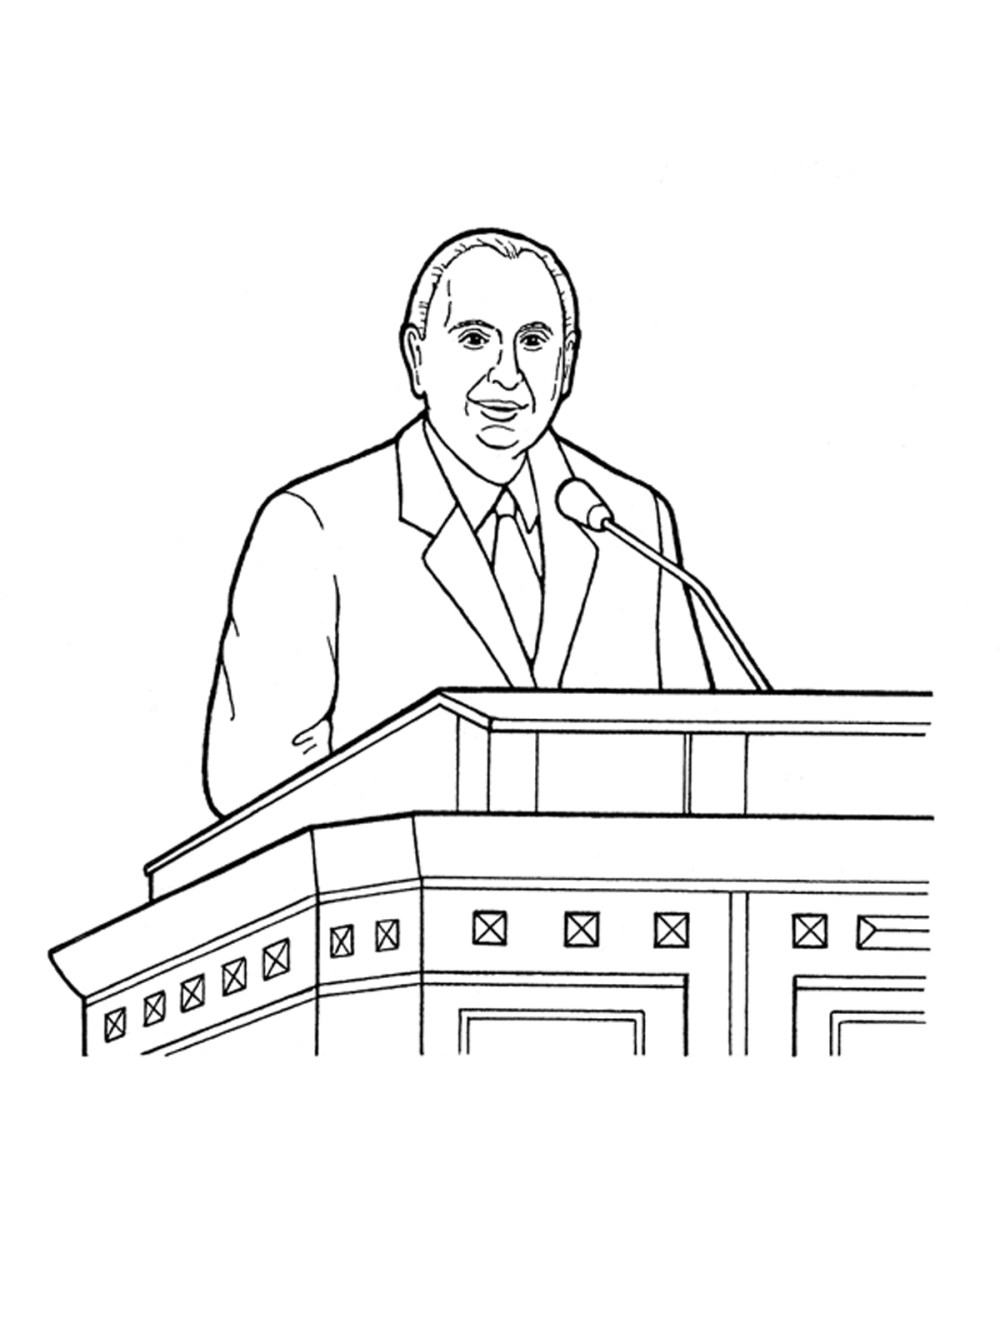 medium resolution of primary clipart general conference lds thomas s monson speaking png royalty free stock